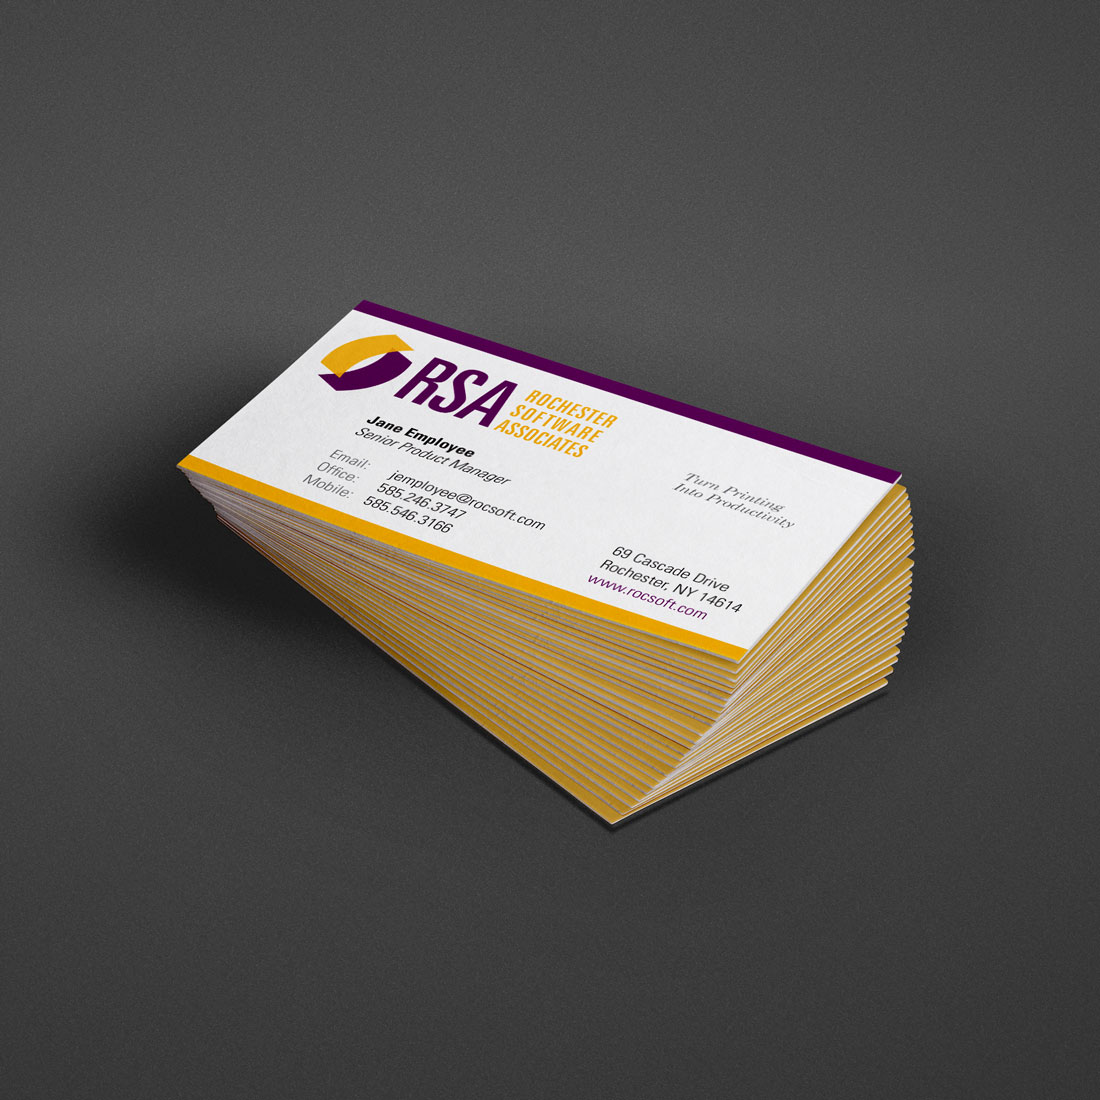 Photo of business cards designed by Pixelpunk Creative for Rochester Software Associates.